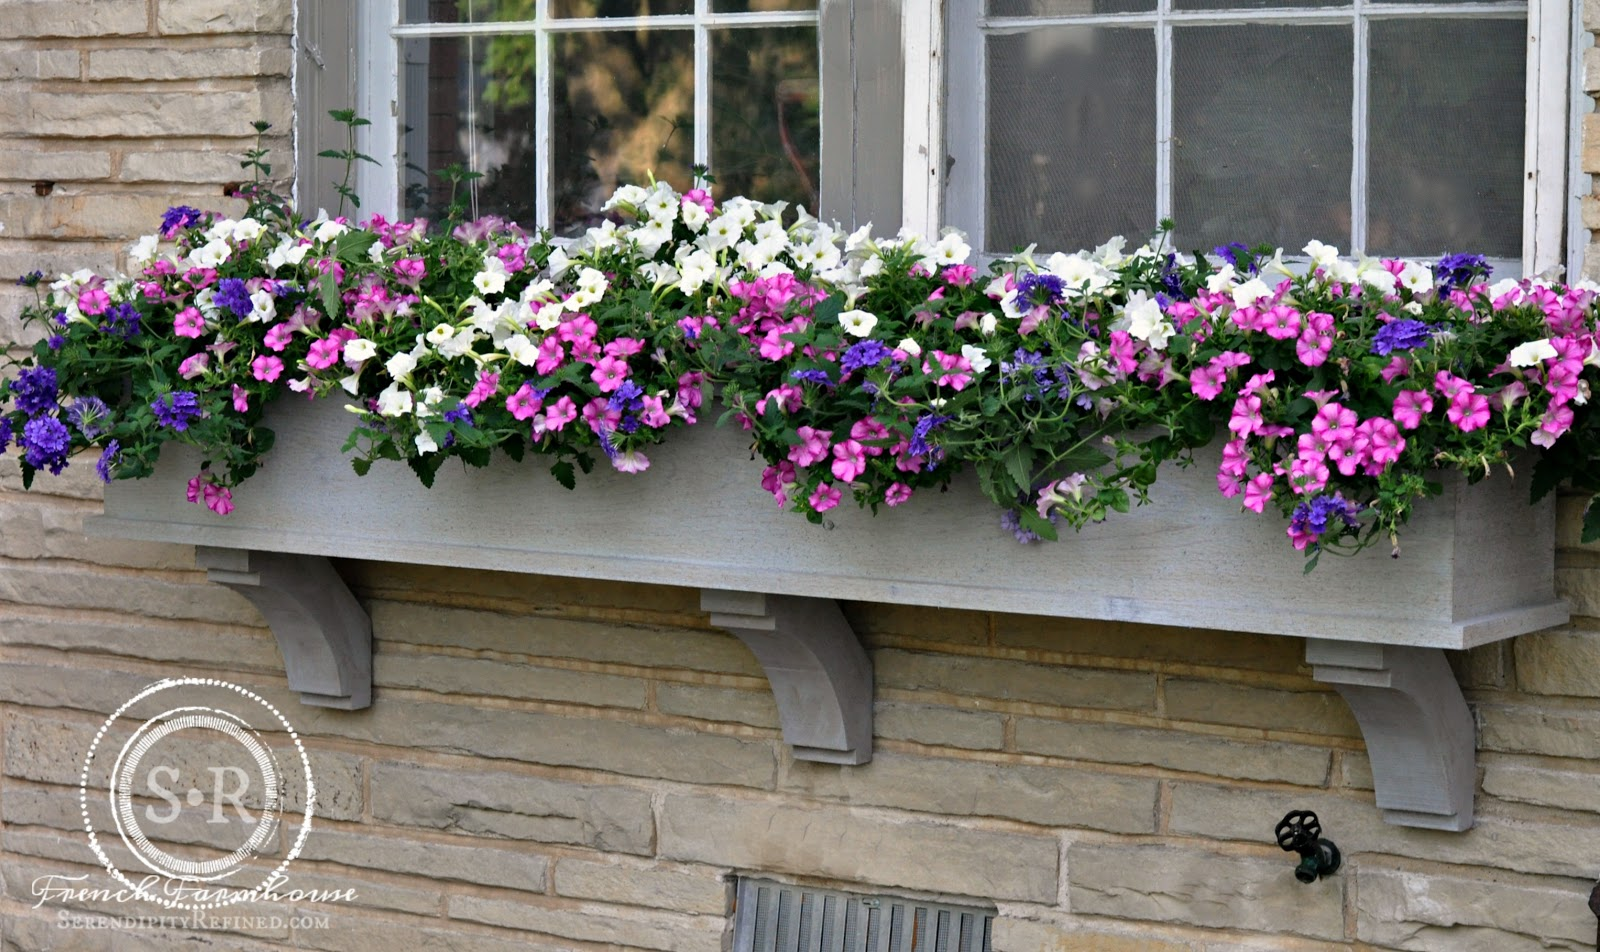 serendipity refined blog how to build a diy rustic cedar window flower box. Black Bedroom Furniture Sets. Home Design Ideas